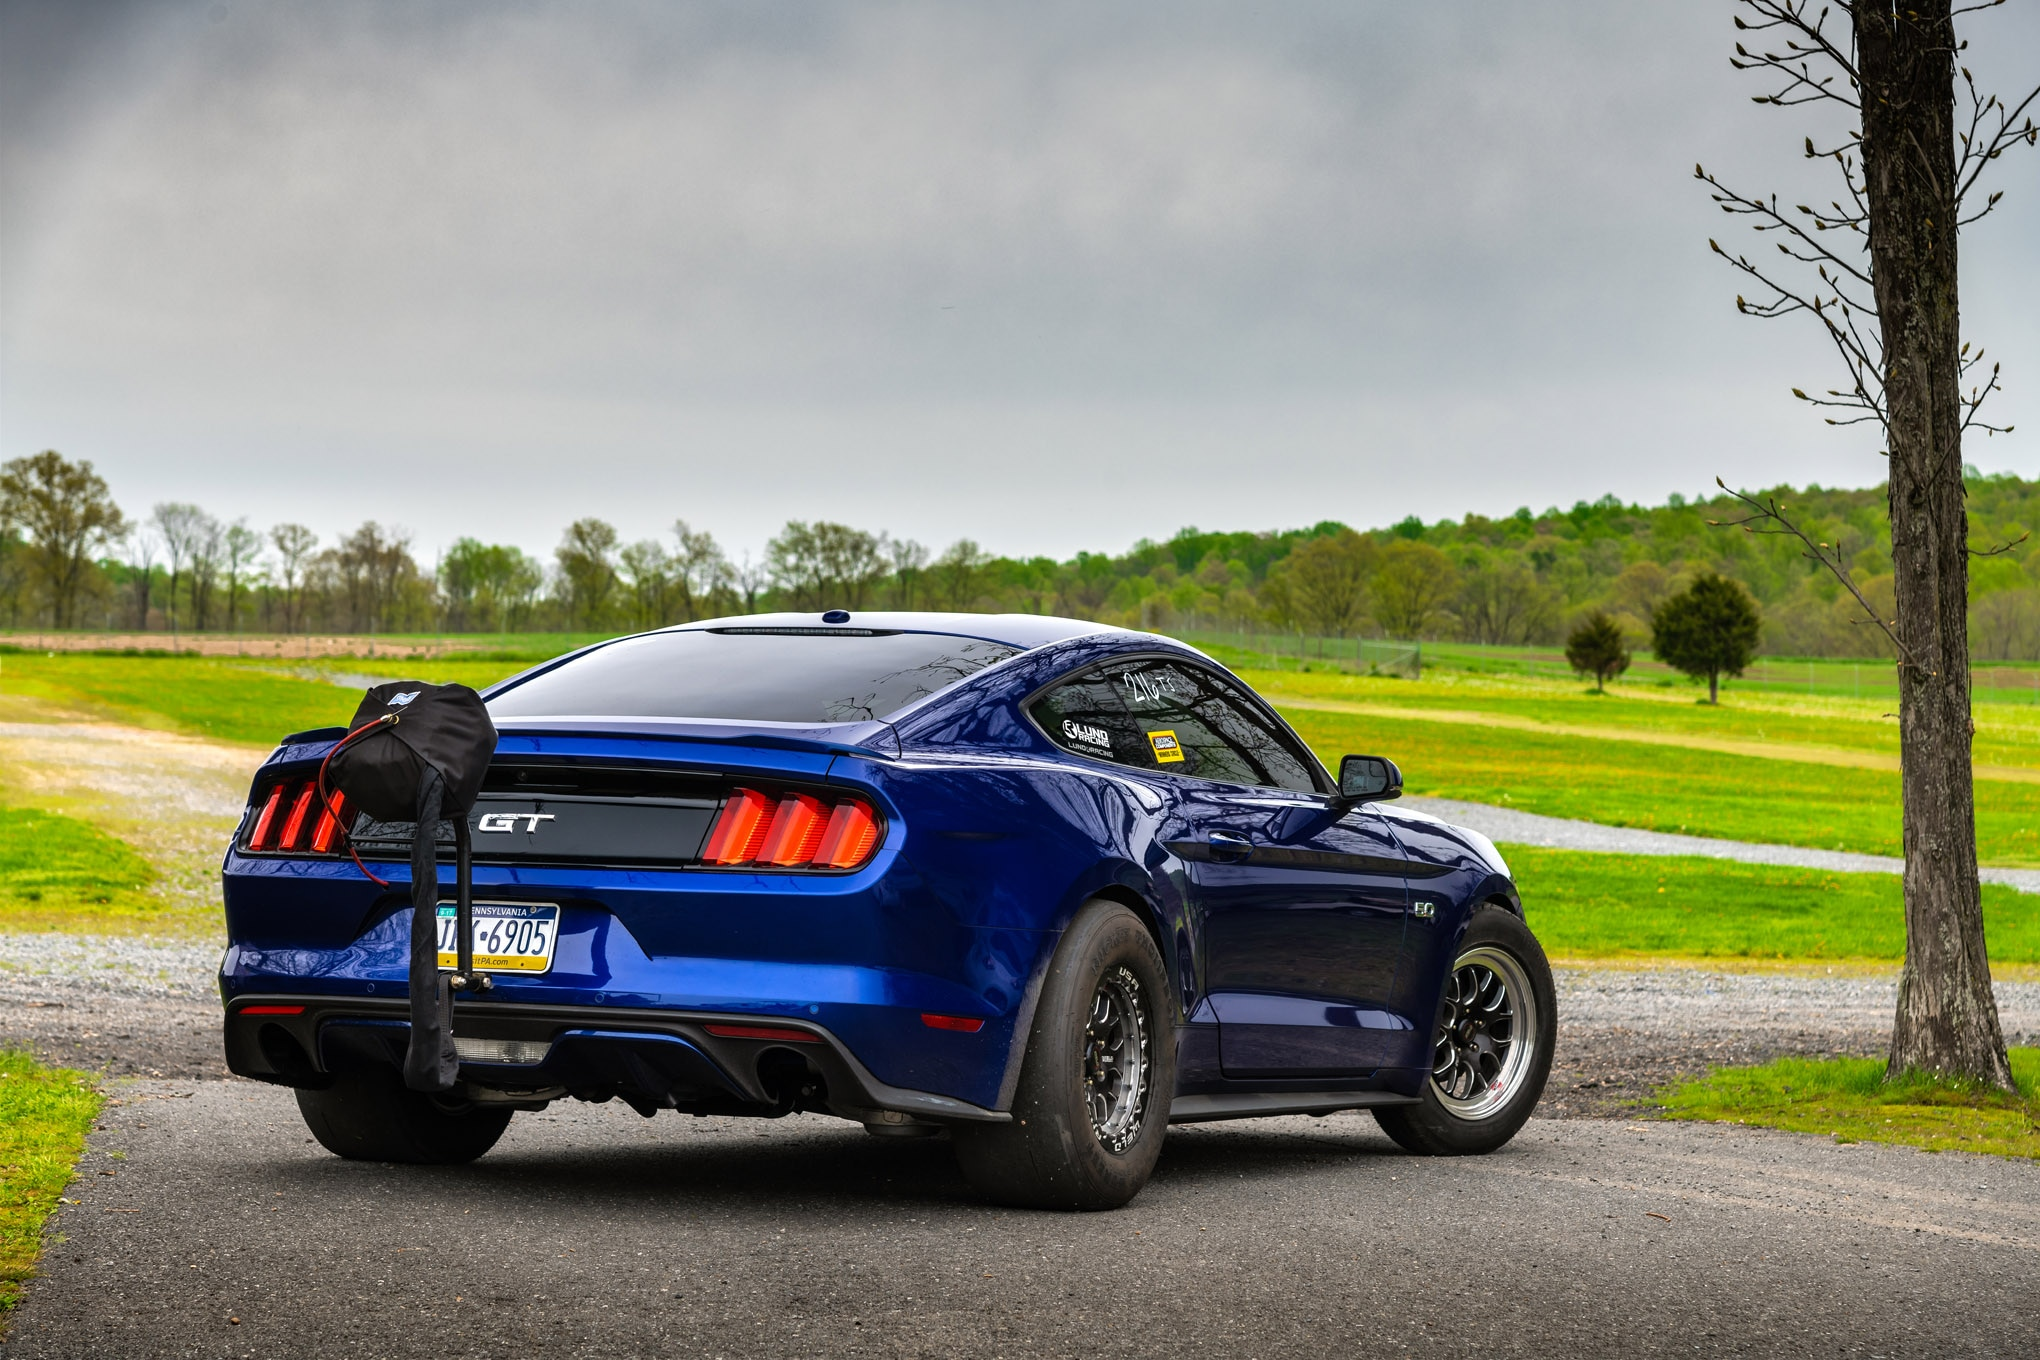 Lund Racing 2015 Mustang GT 2